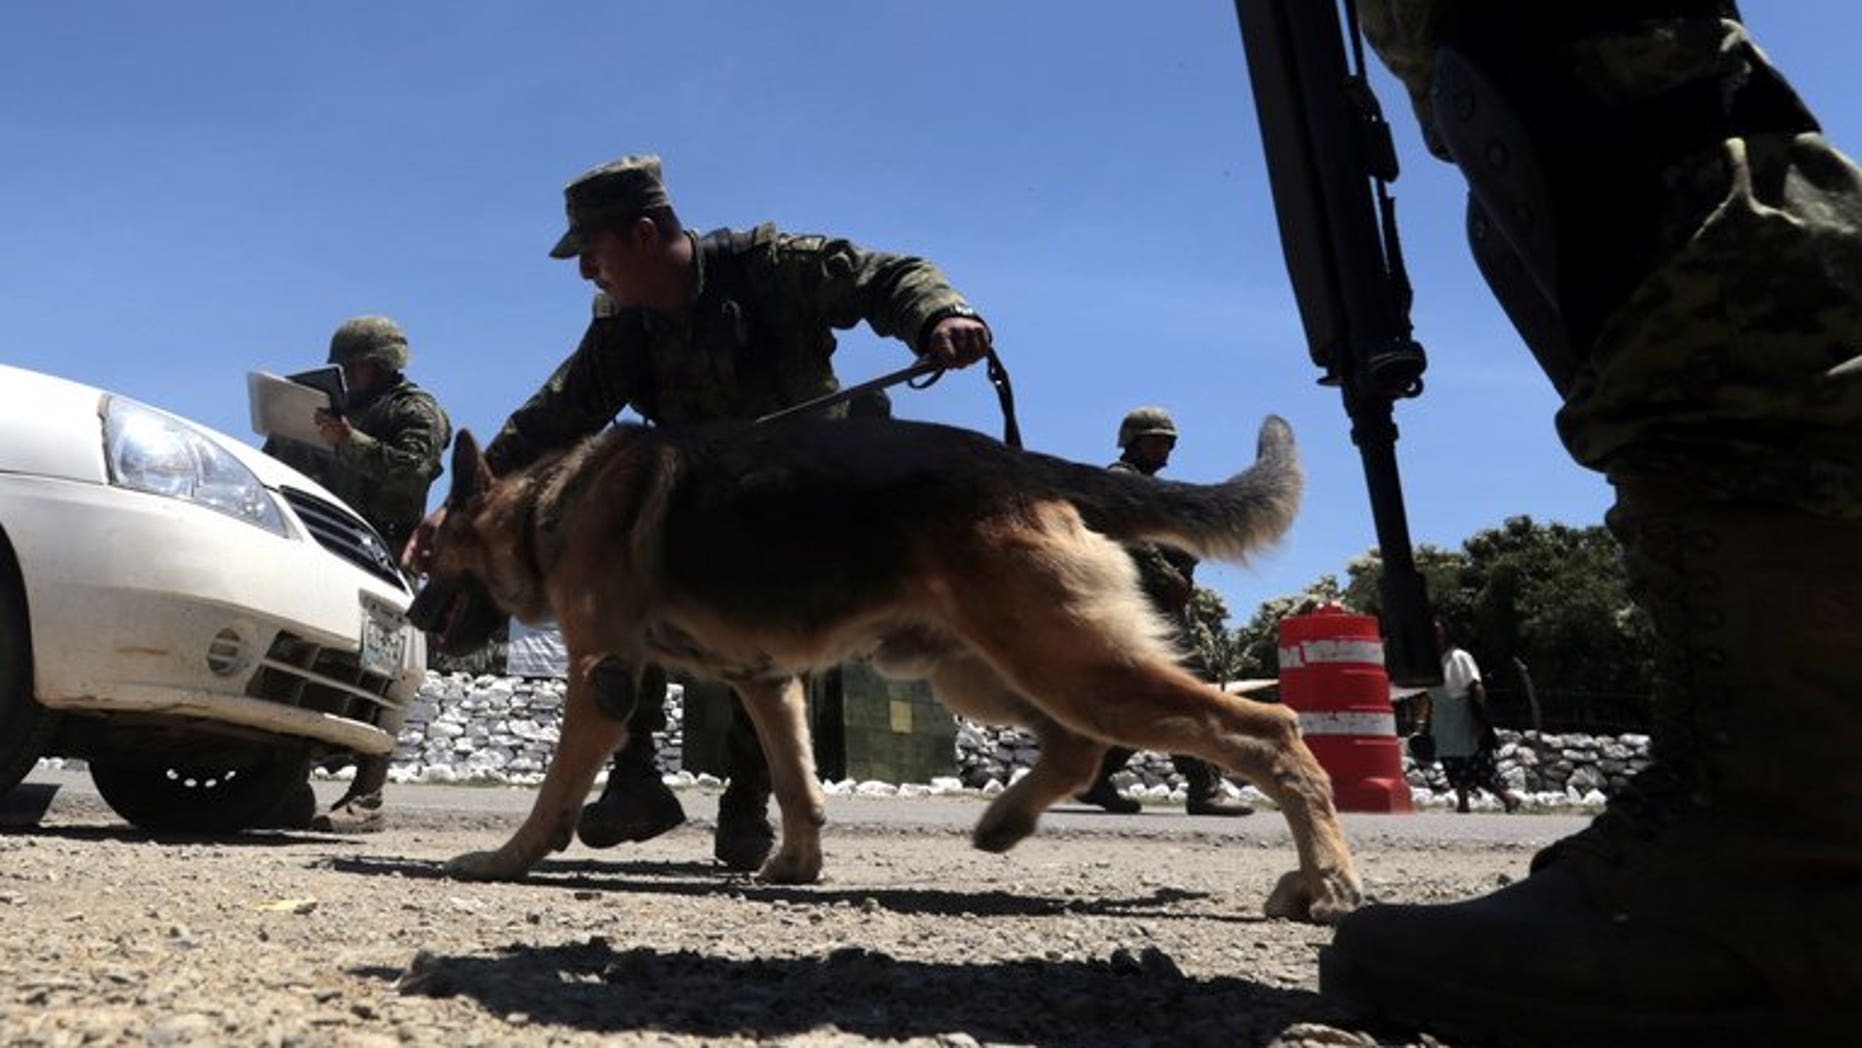 A member of the Mexican Army inspects a vehicle at a checkpoint on the road to Tlacotepec in Eduardo Neri municipality, Mexico, on August 2, 2013. The Mexican government announced Saturday that Mario Ramirez Trevino, leader of the Gulf drug cartel in the north of the country, and wanted in the United States, had been arrested.